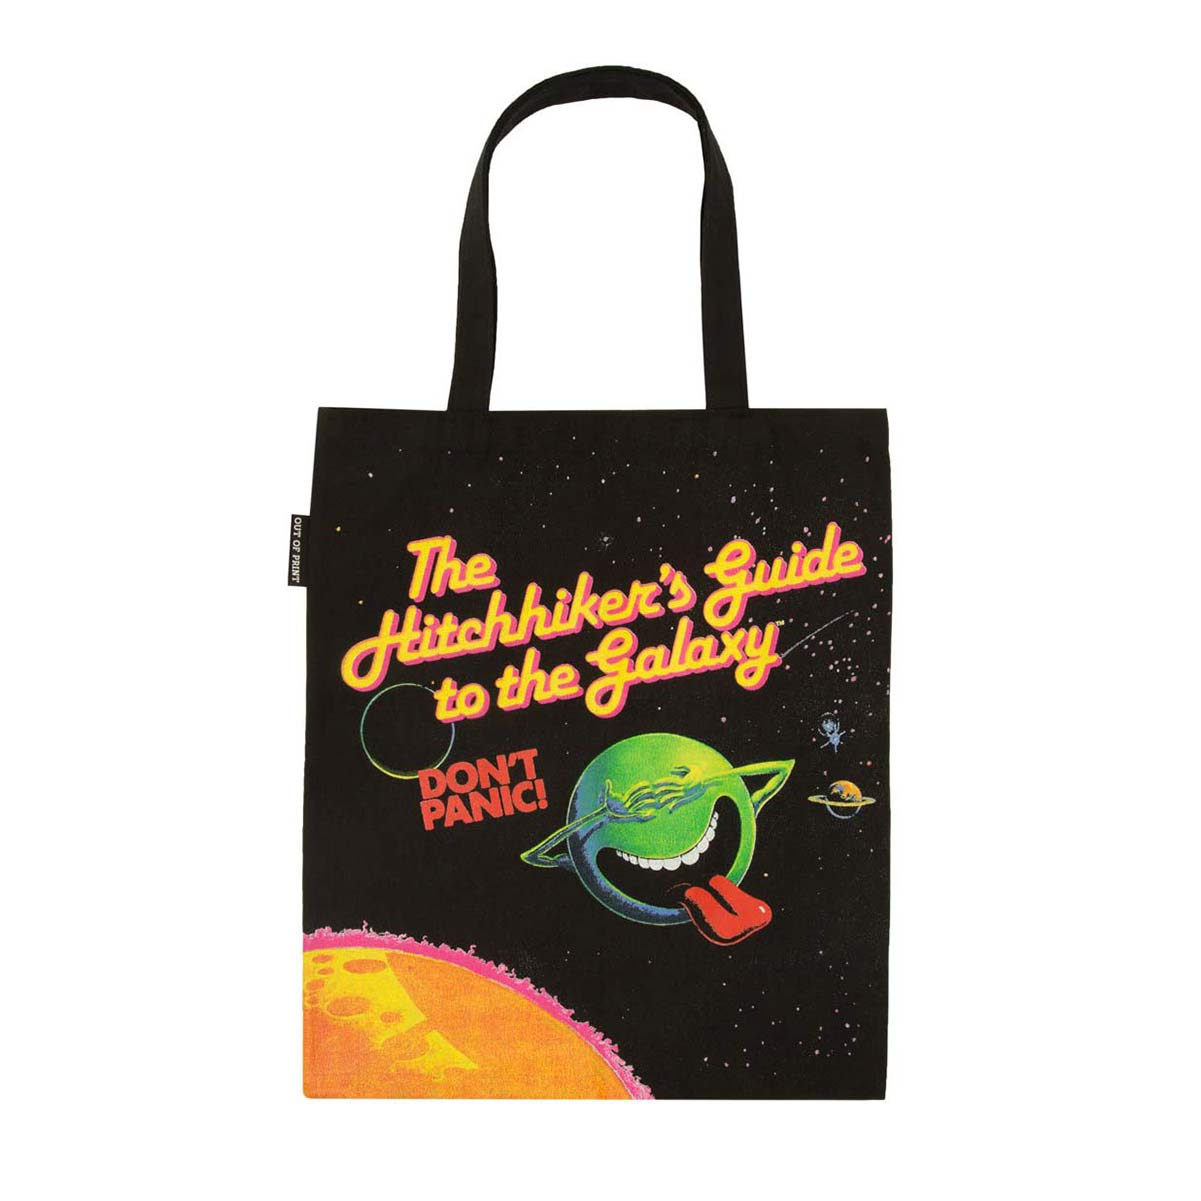 Tote Bag - Douglas Adams - The Hitchhiker's Guide to the Galaxy